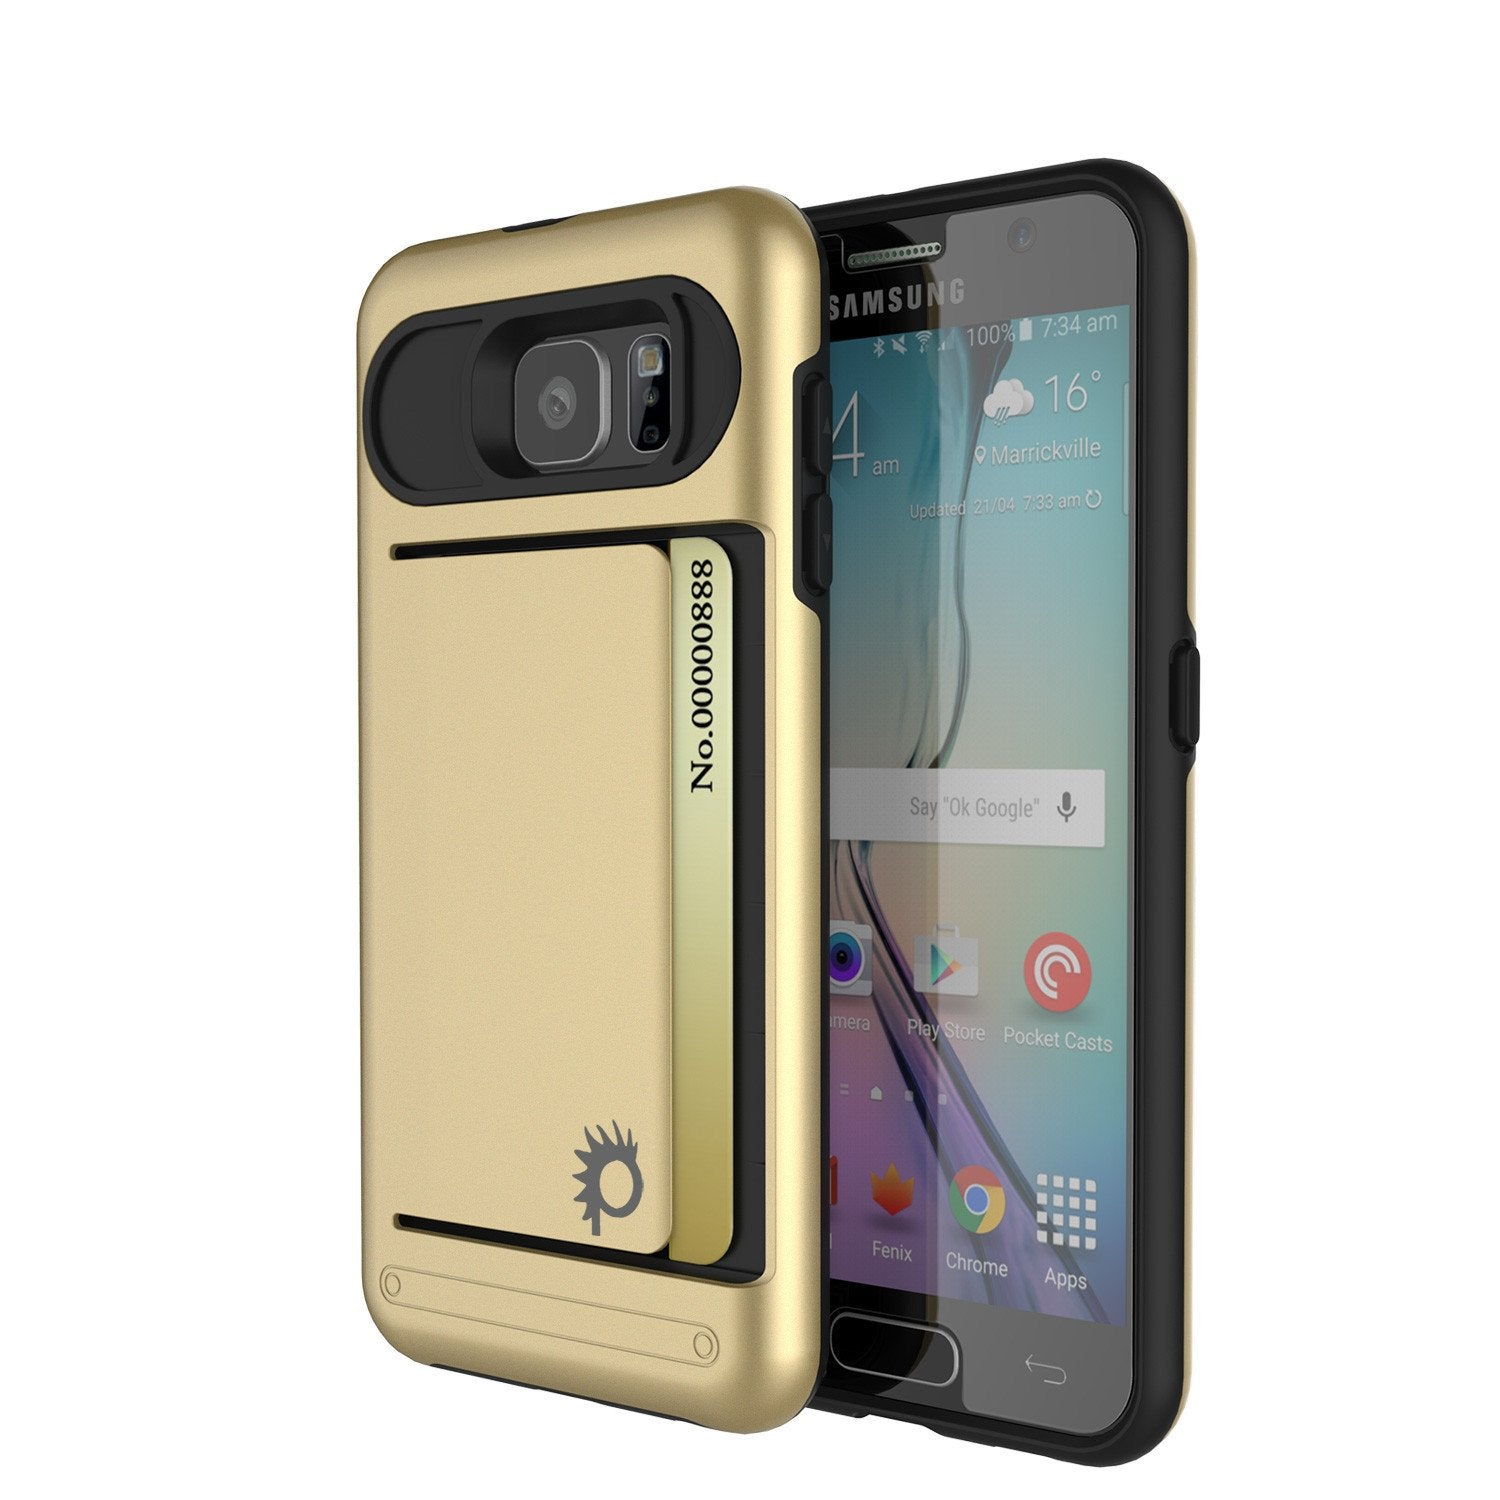 Galaxy S6 EDGE Plus Case PunkCase CLUTCH Gold Series Slim Armor Soft Cover w/ Screen Protector - PunkCase NZ